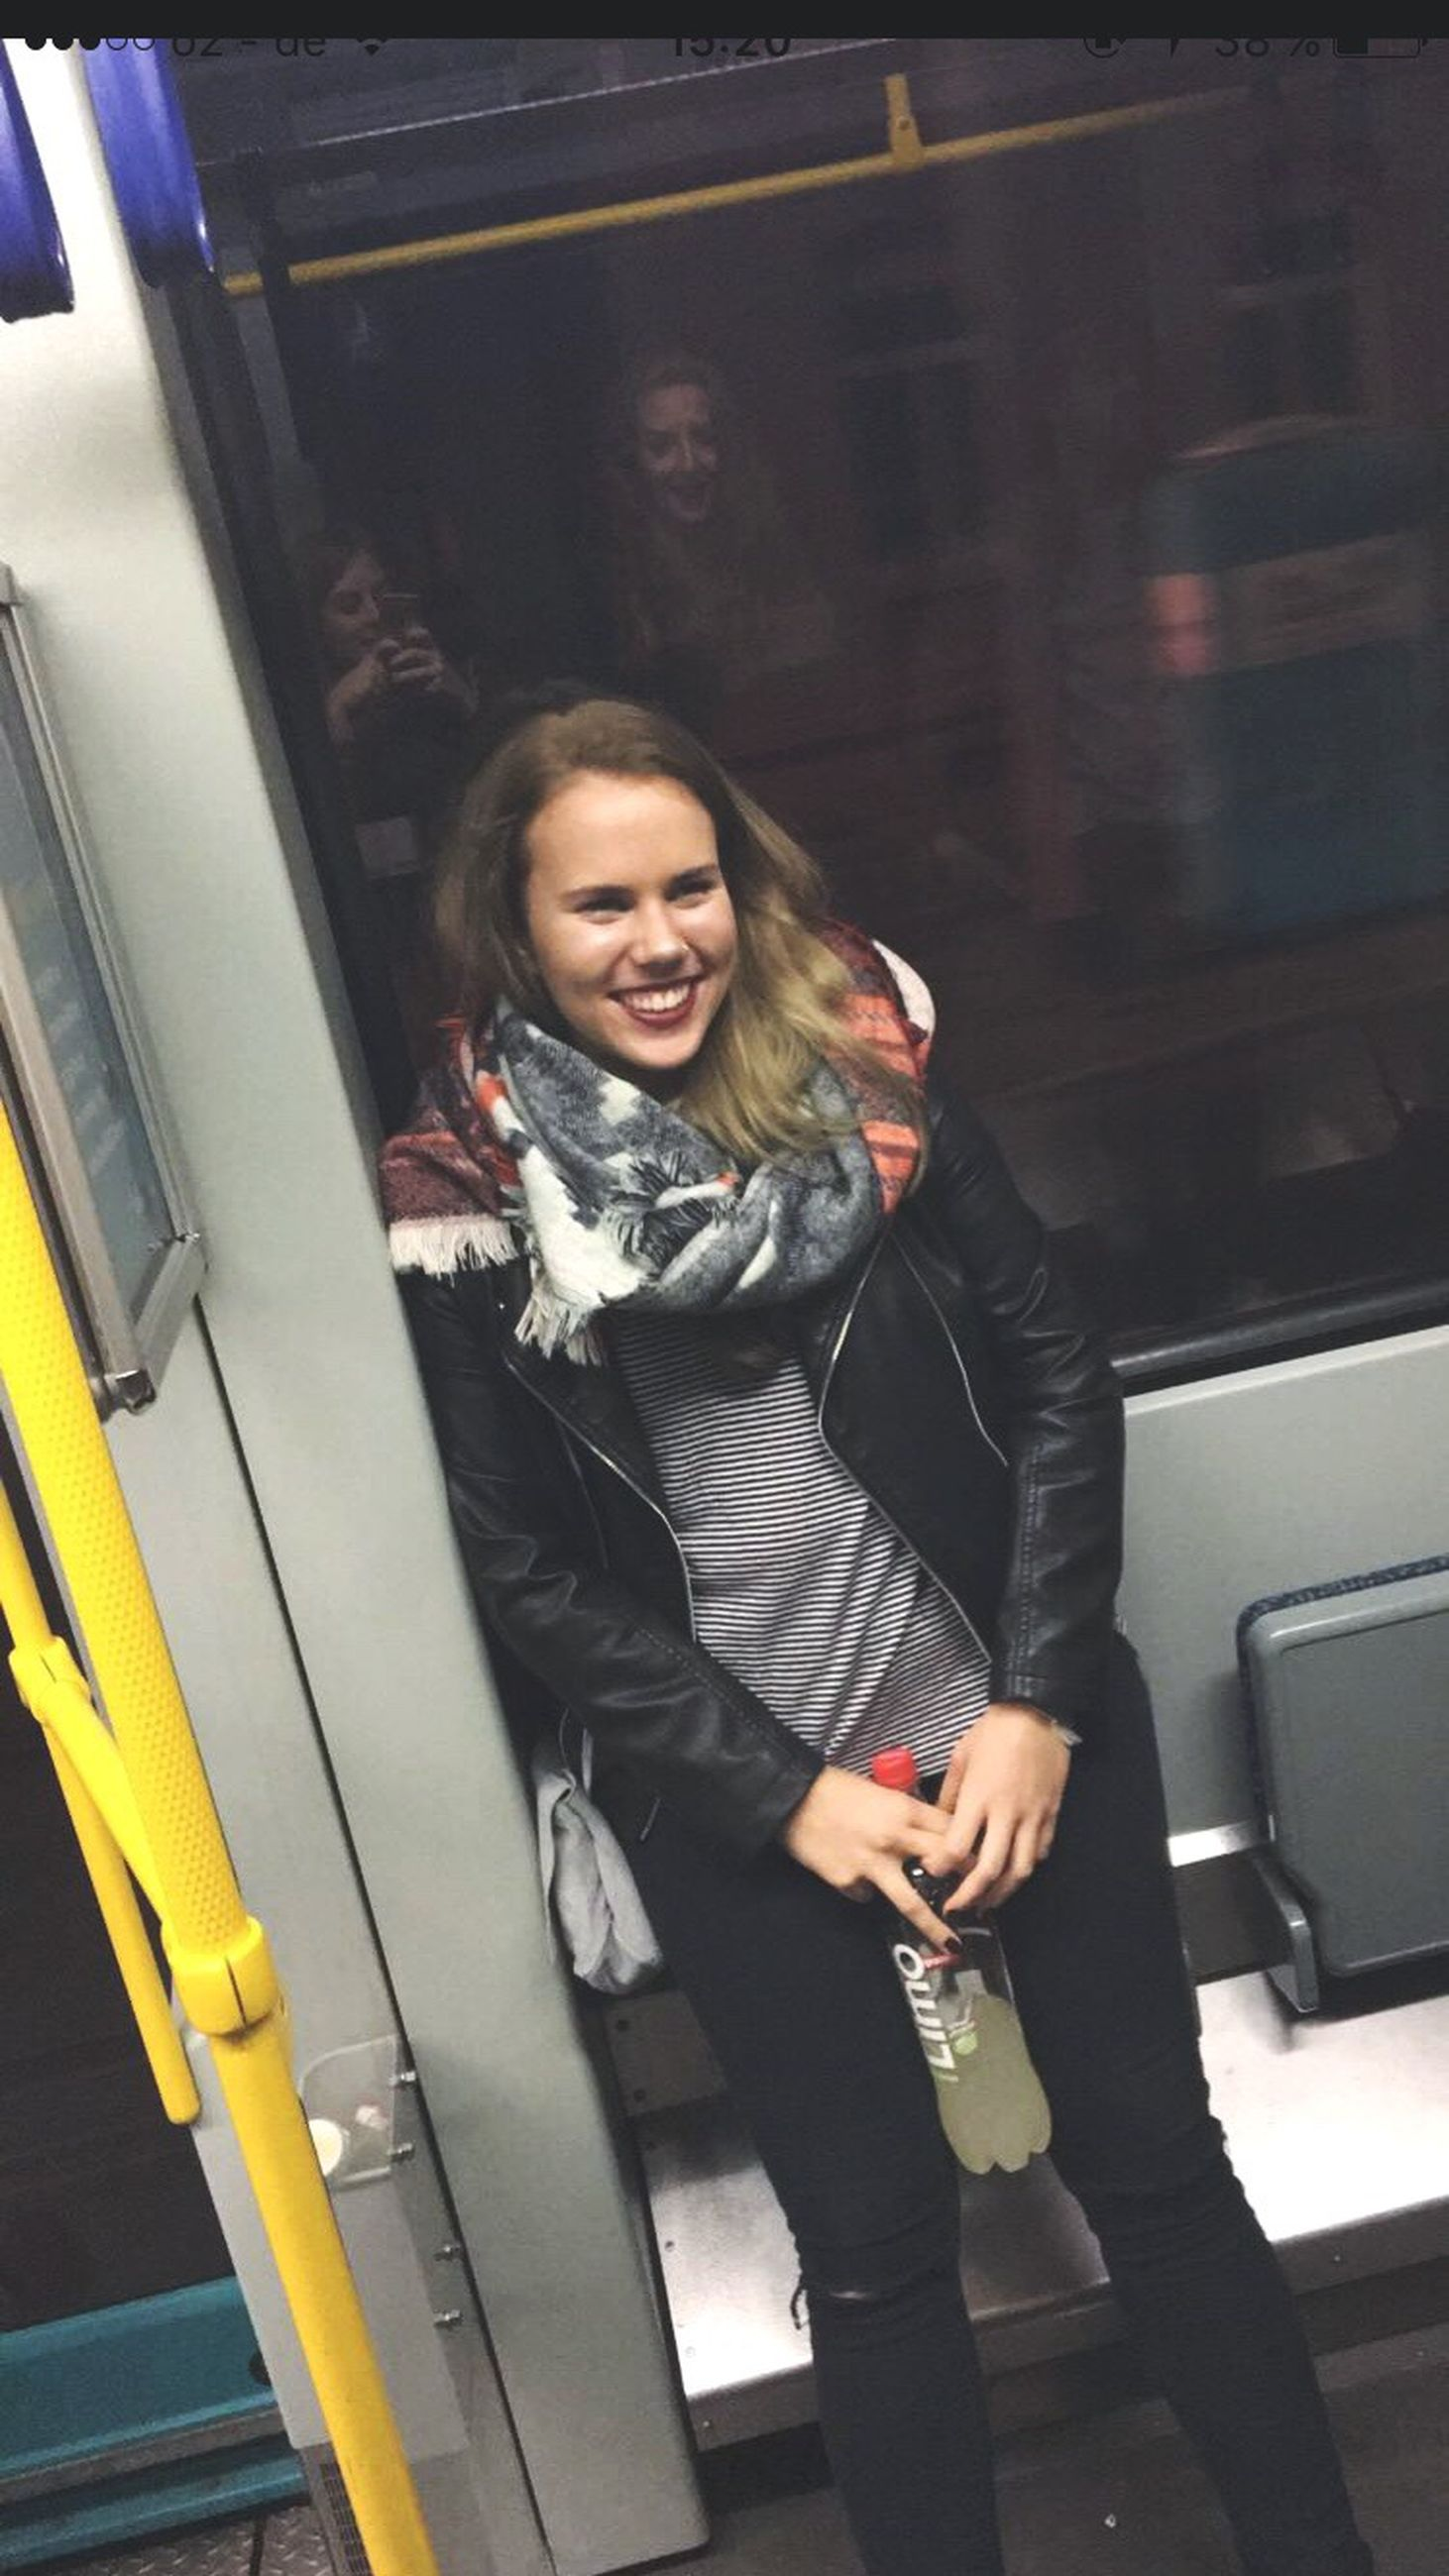 indoors, transportation, sitting, casual clothing, young adult, front view, relaxation, full length, young women, mode of transport, person, looking at camera, subway train